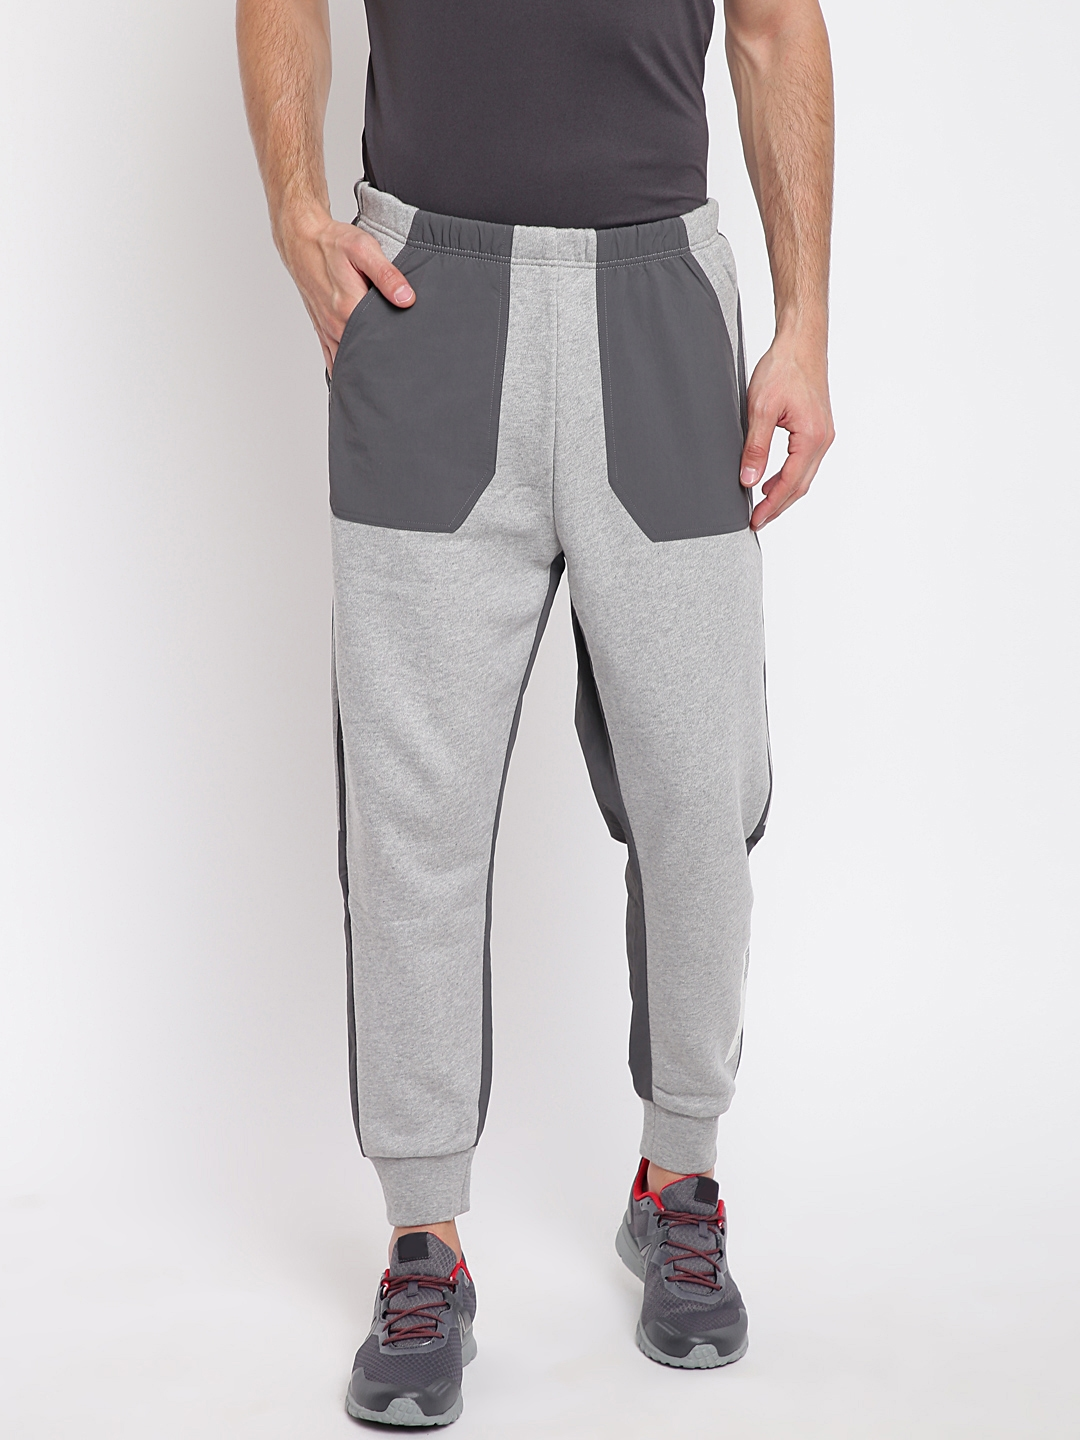 b53a52f389251f Buy ADIDAS Men Grey NMD Joggers - Track Pants for Men 7101613